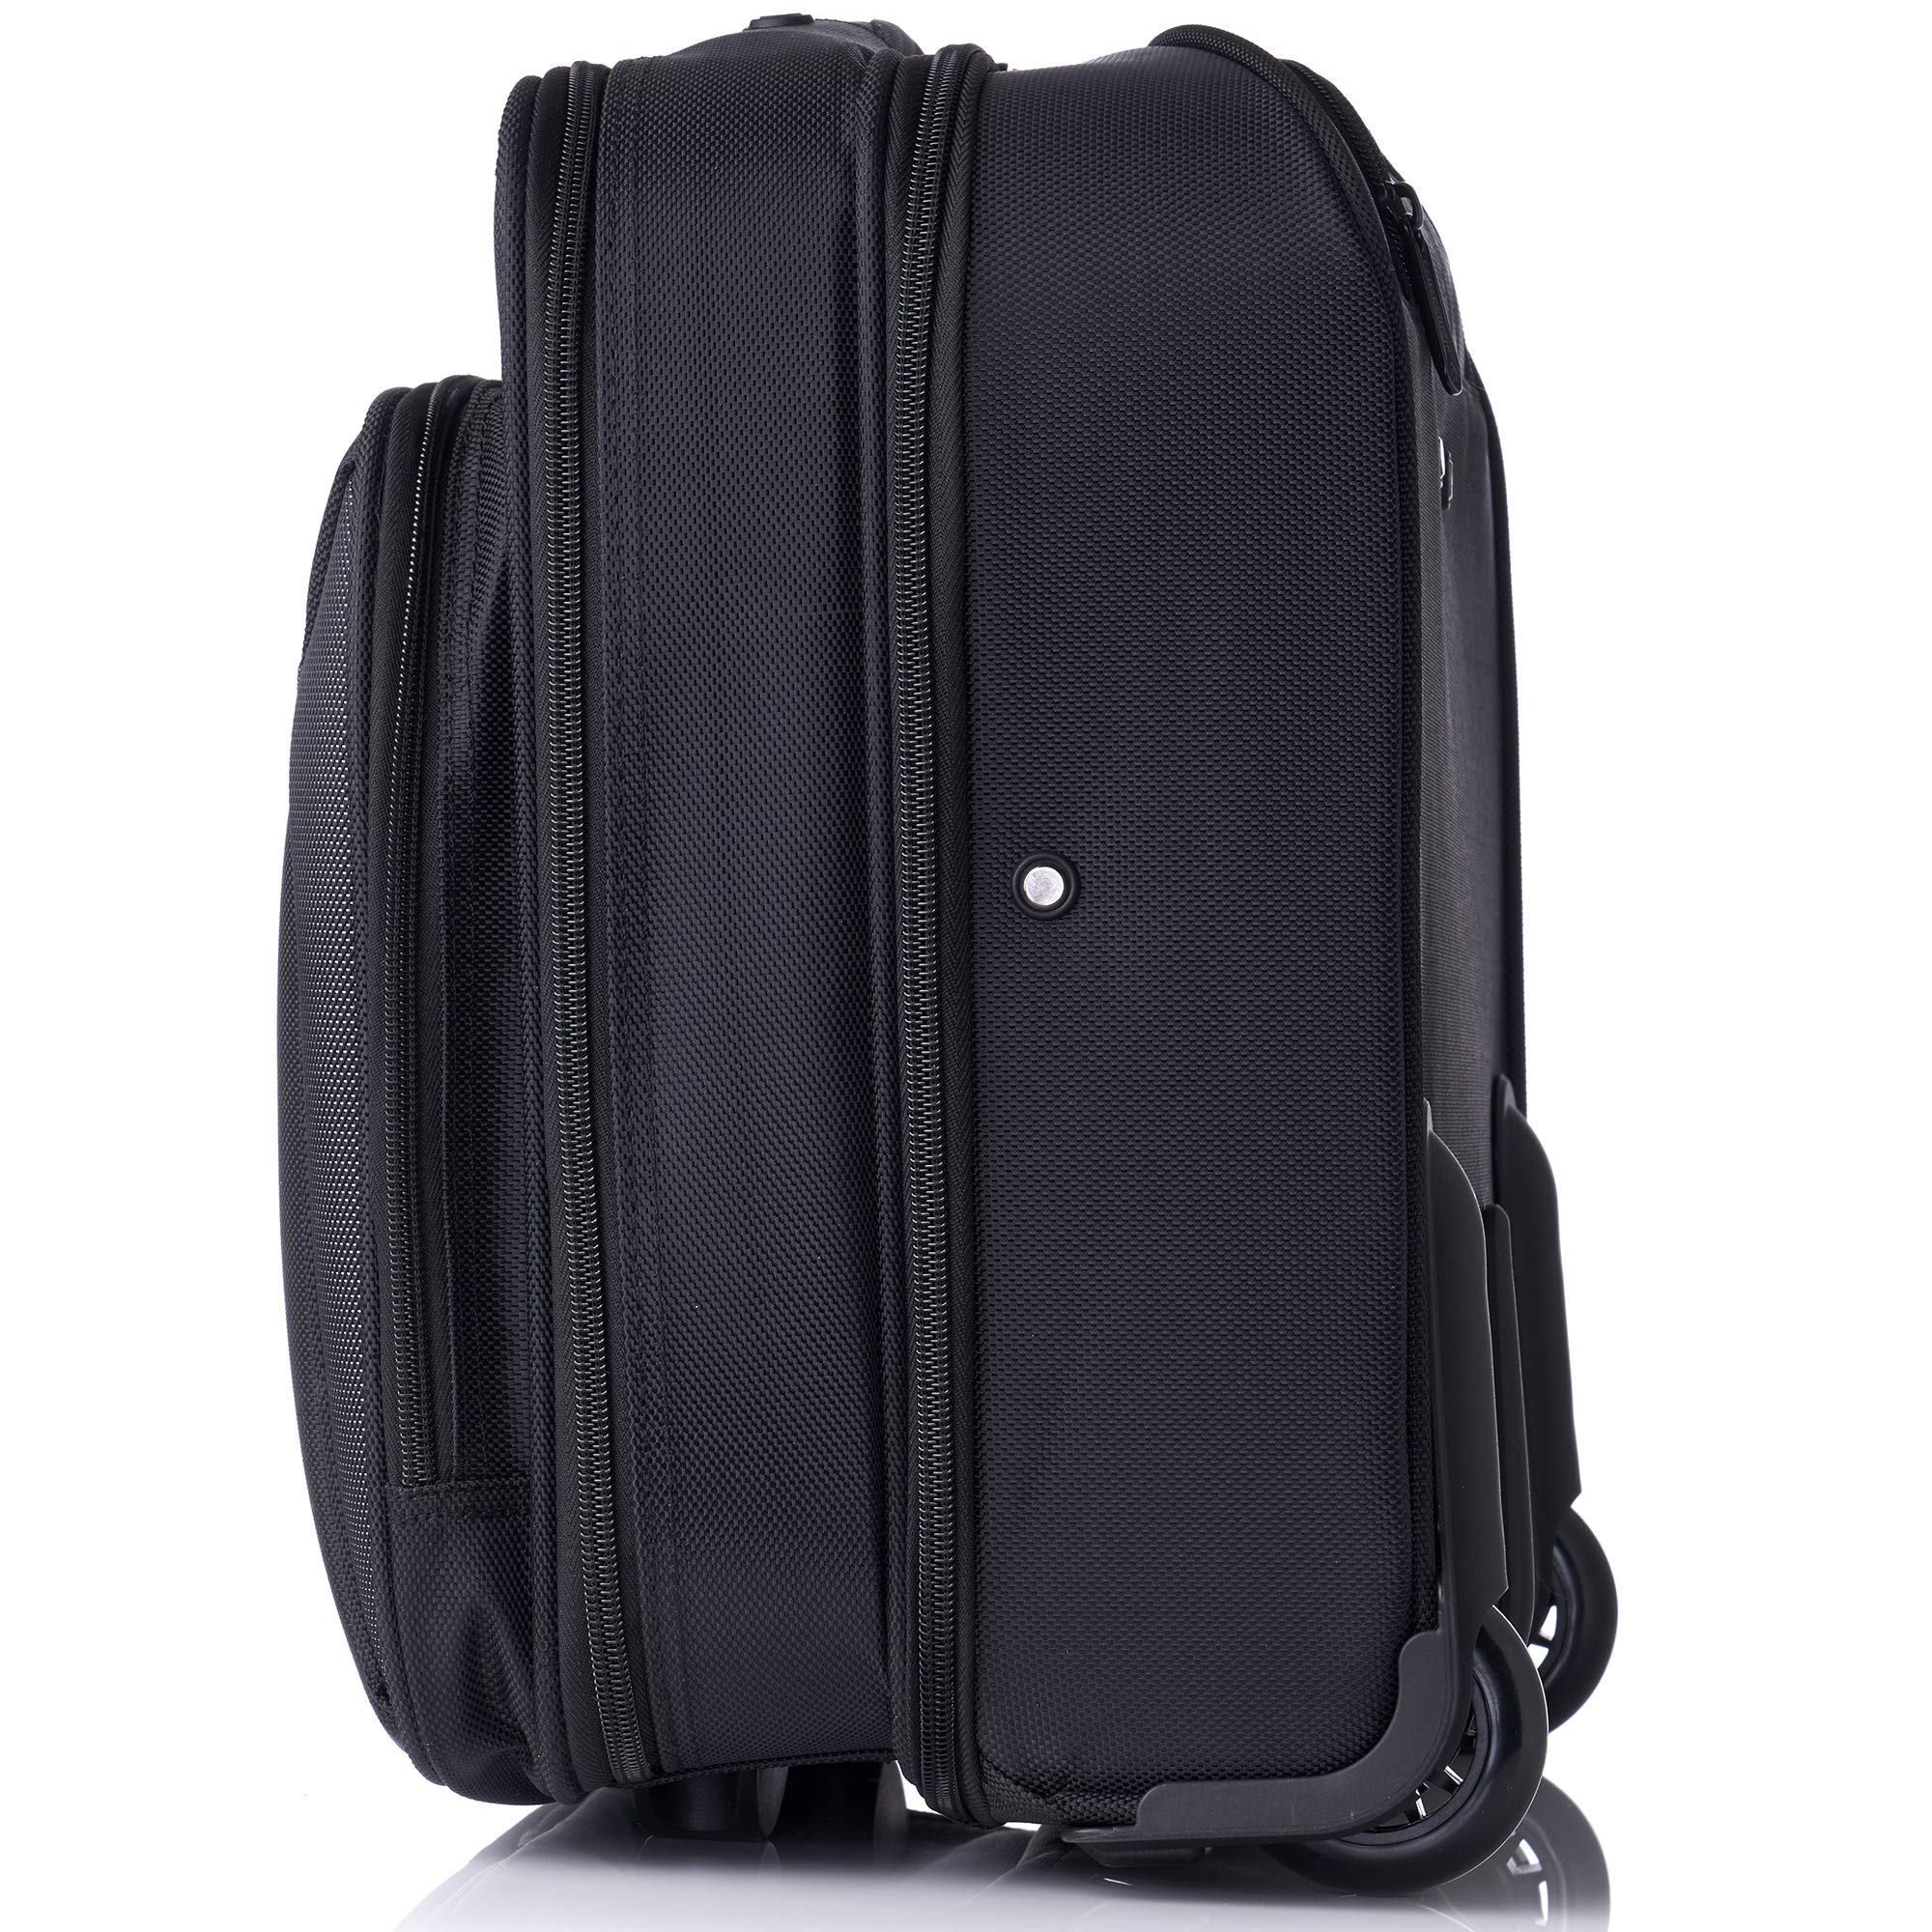 Alpine Swiss Rolling Laptop Briefcase Wheeled Overnight Carry on Bag Up to 15.6 Inches Notebook - Carries Legal Size Files by alpine swiss (Image #6)